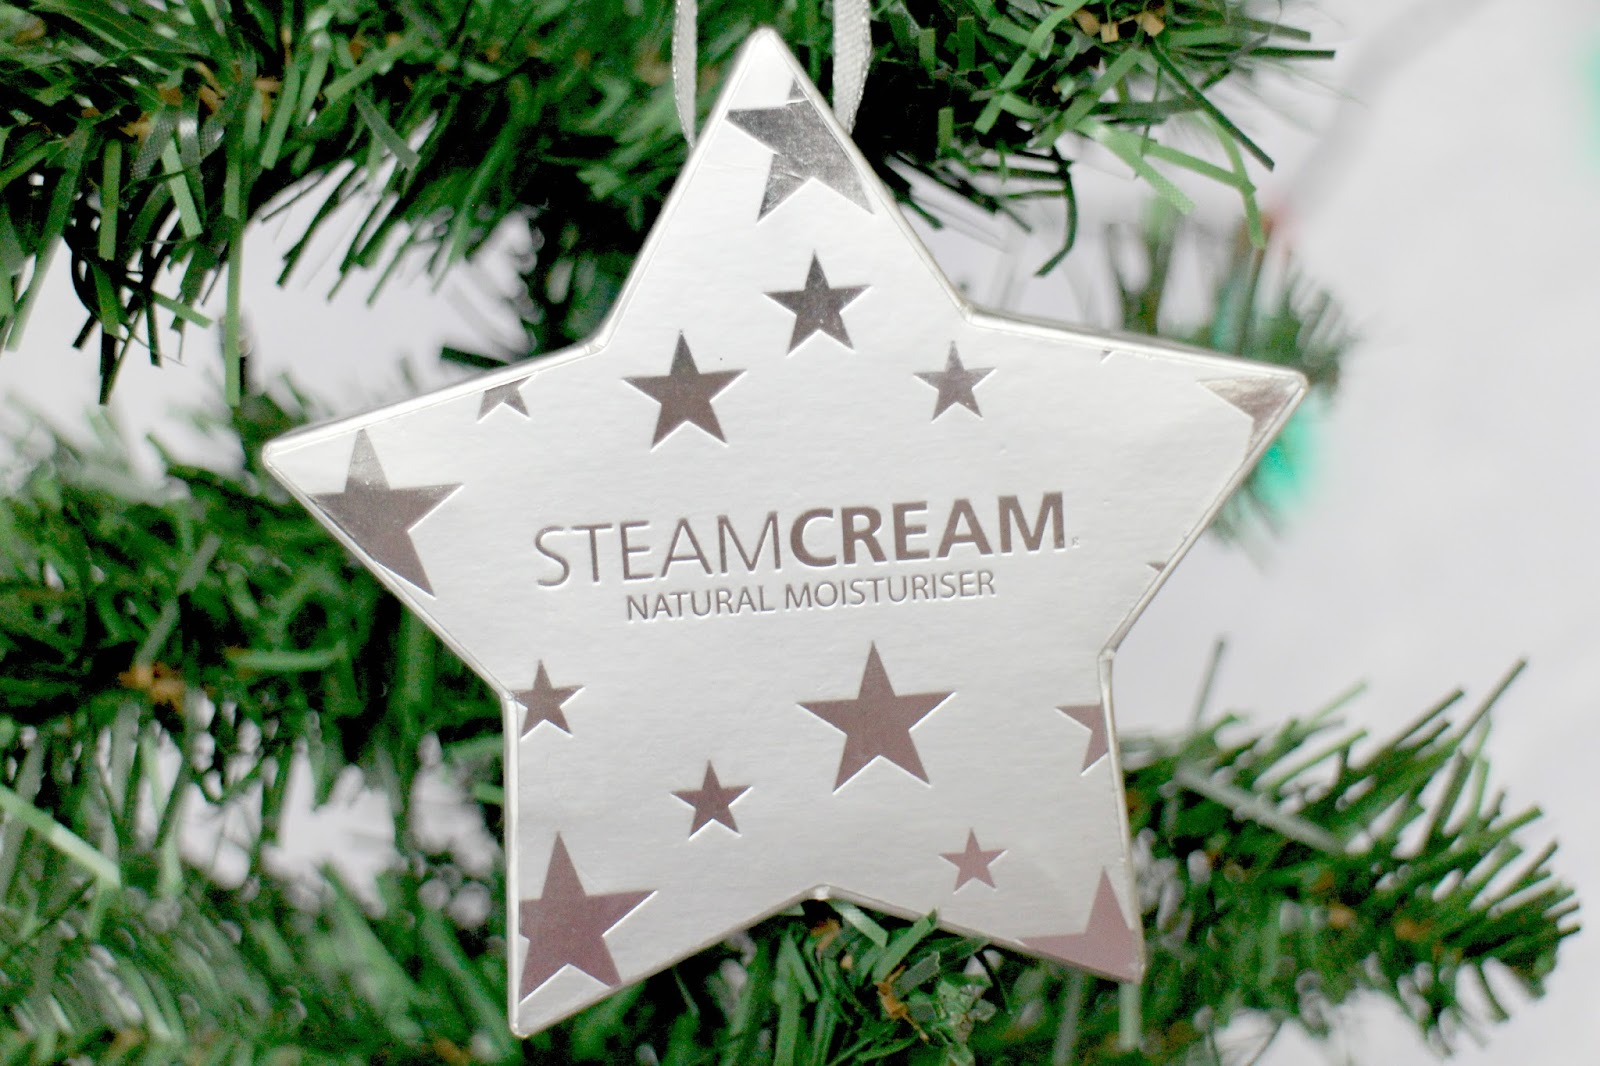 STEAMCREAM Moisturiser Xmas Star